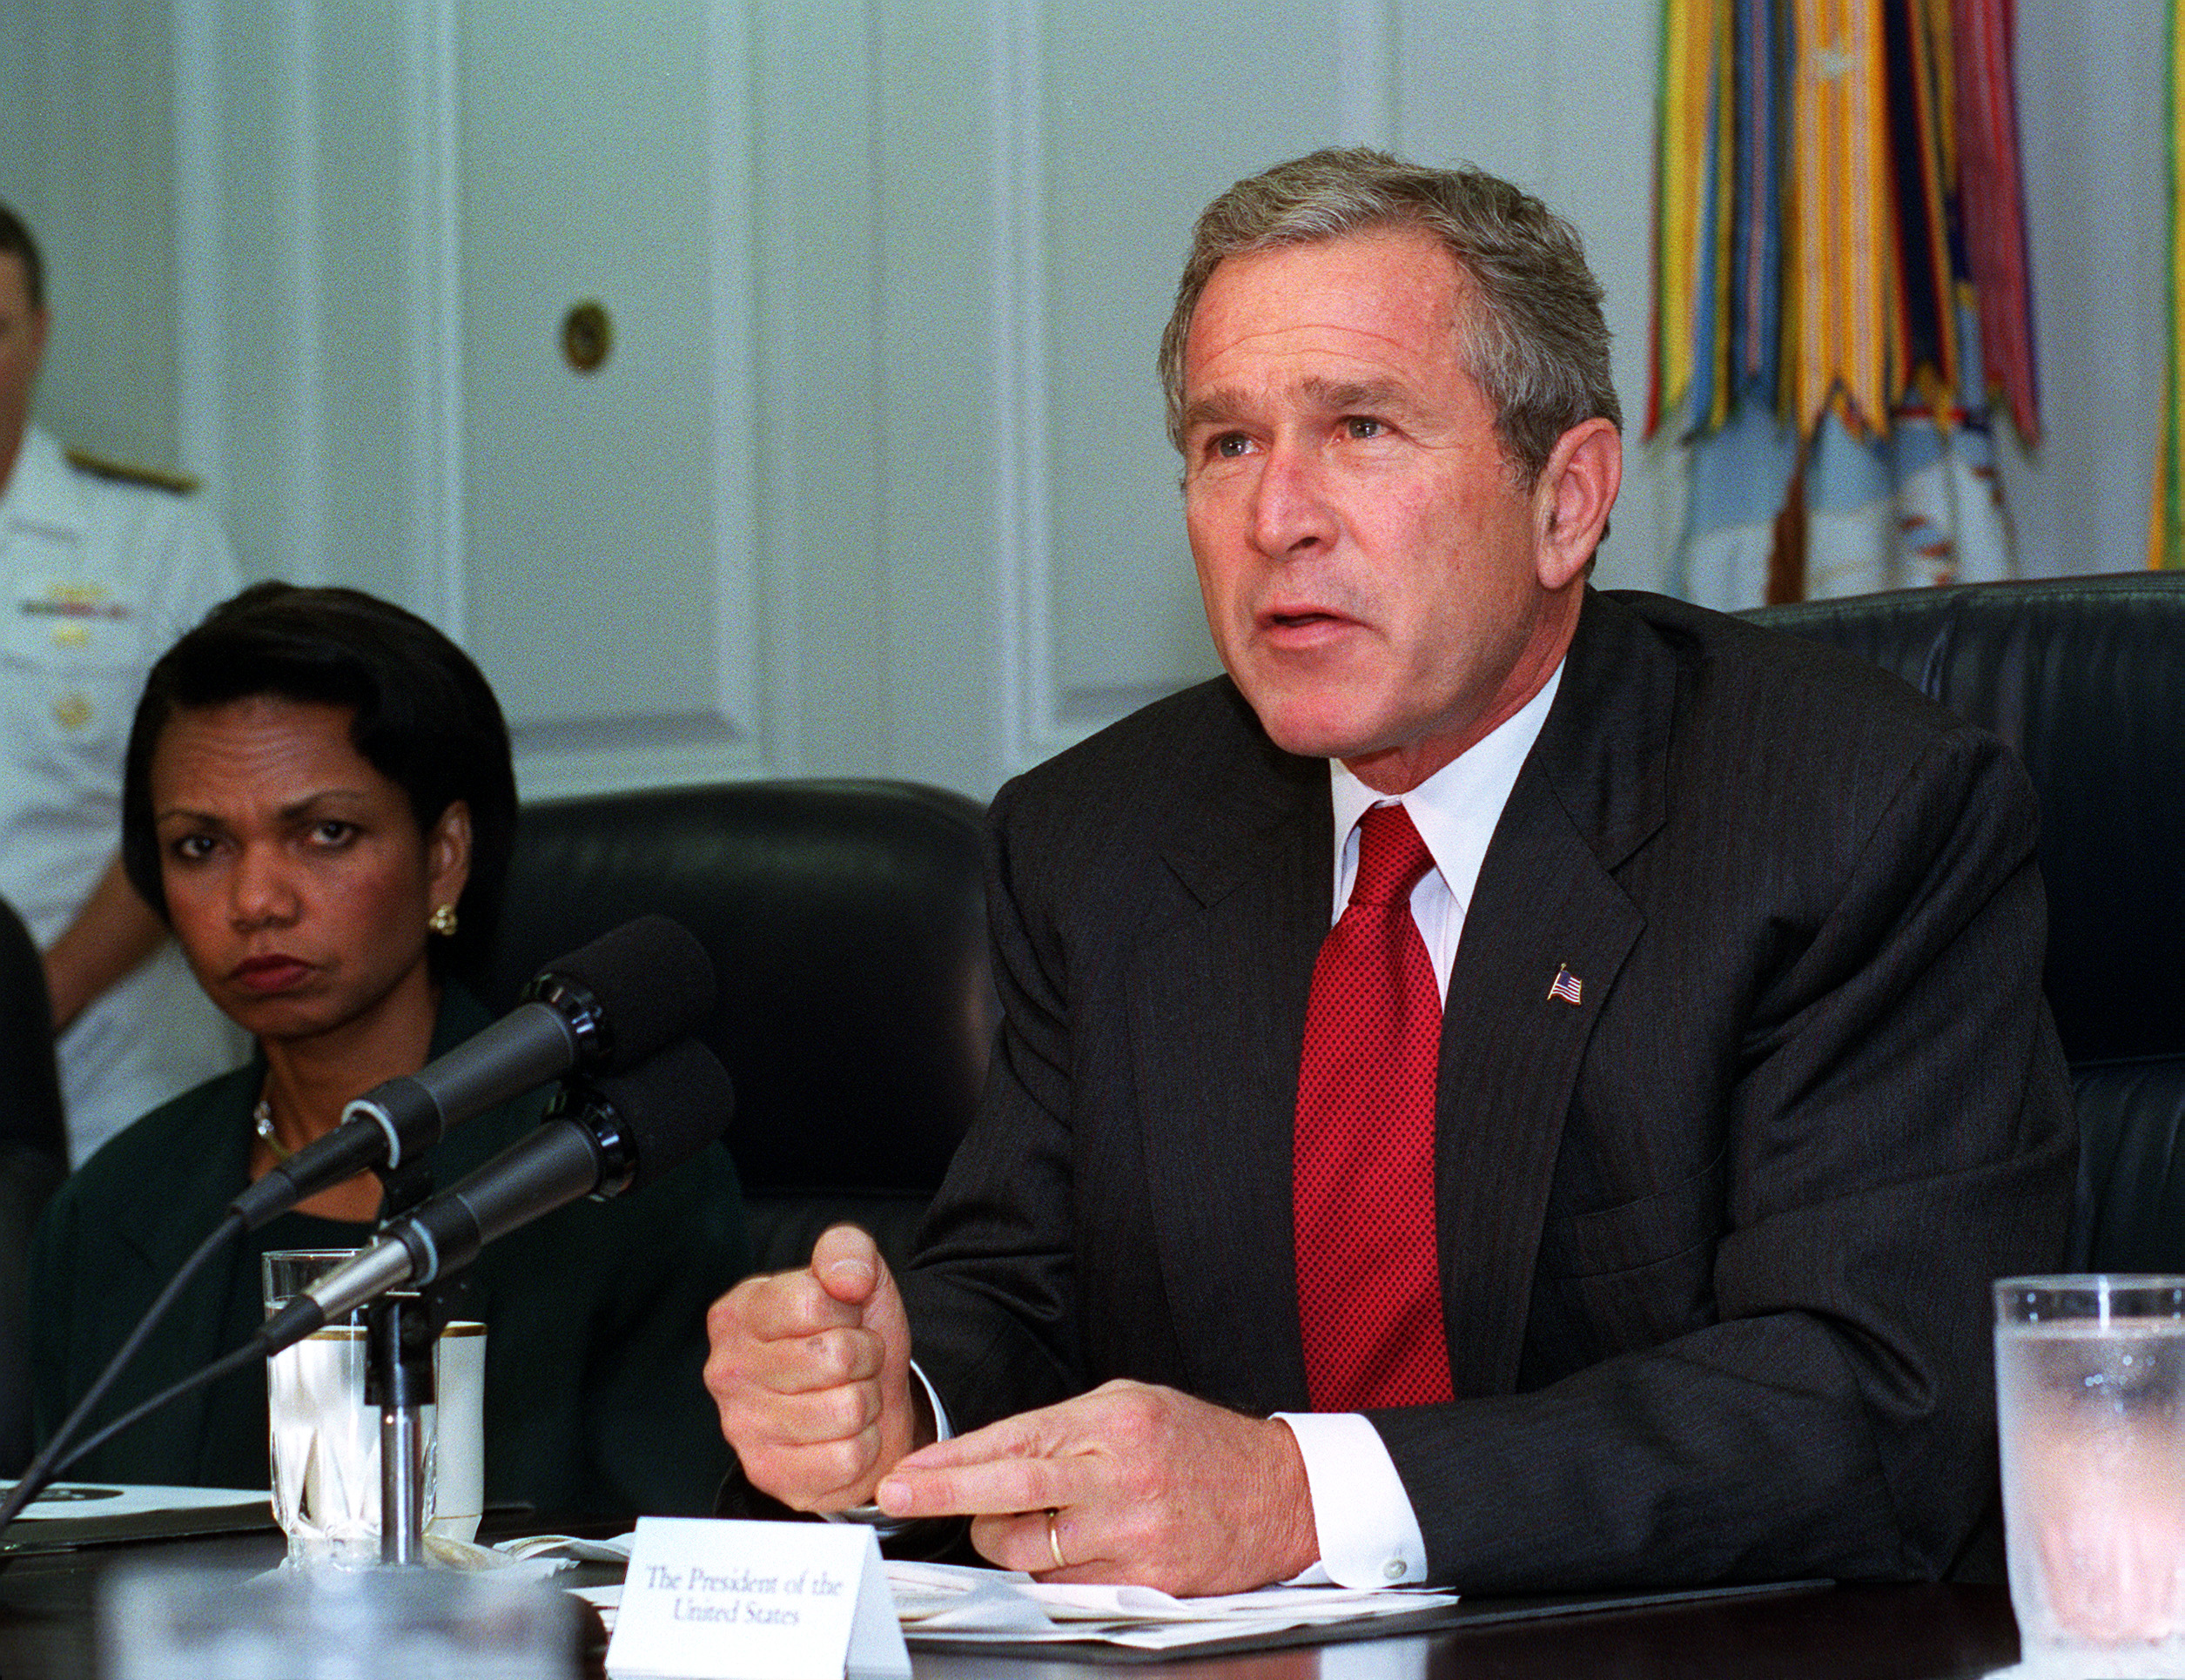 President George W. Bush addresses the media at the Pentagon on Sept. 17, 2001.jpg